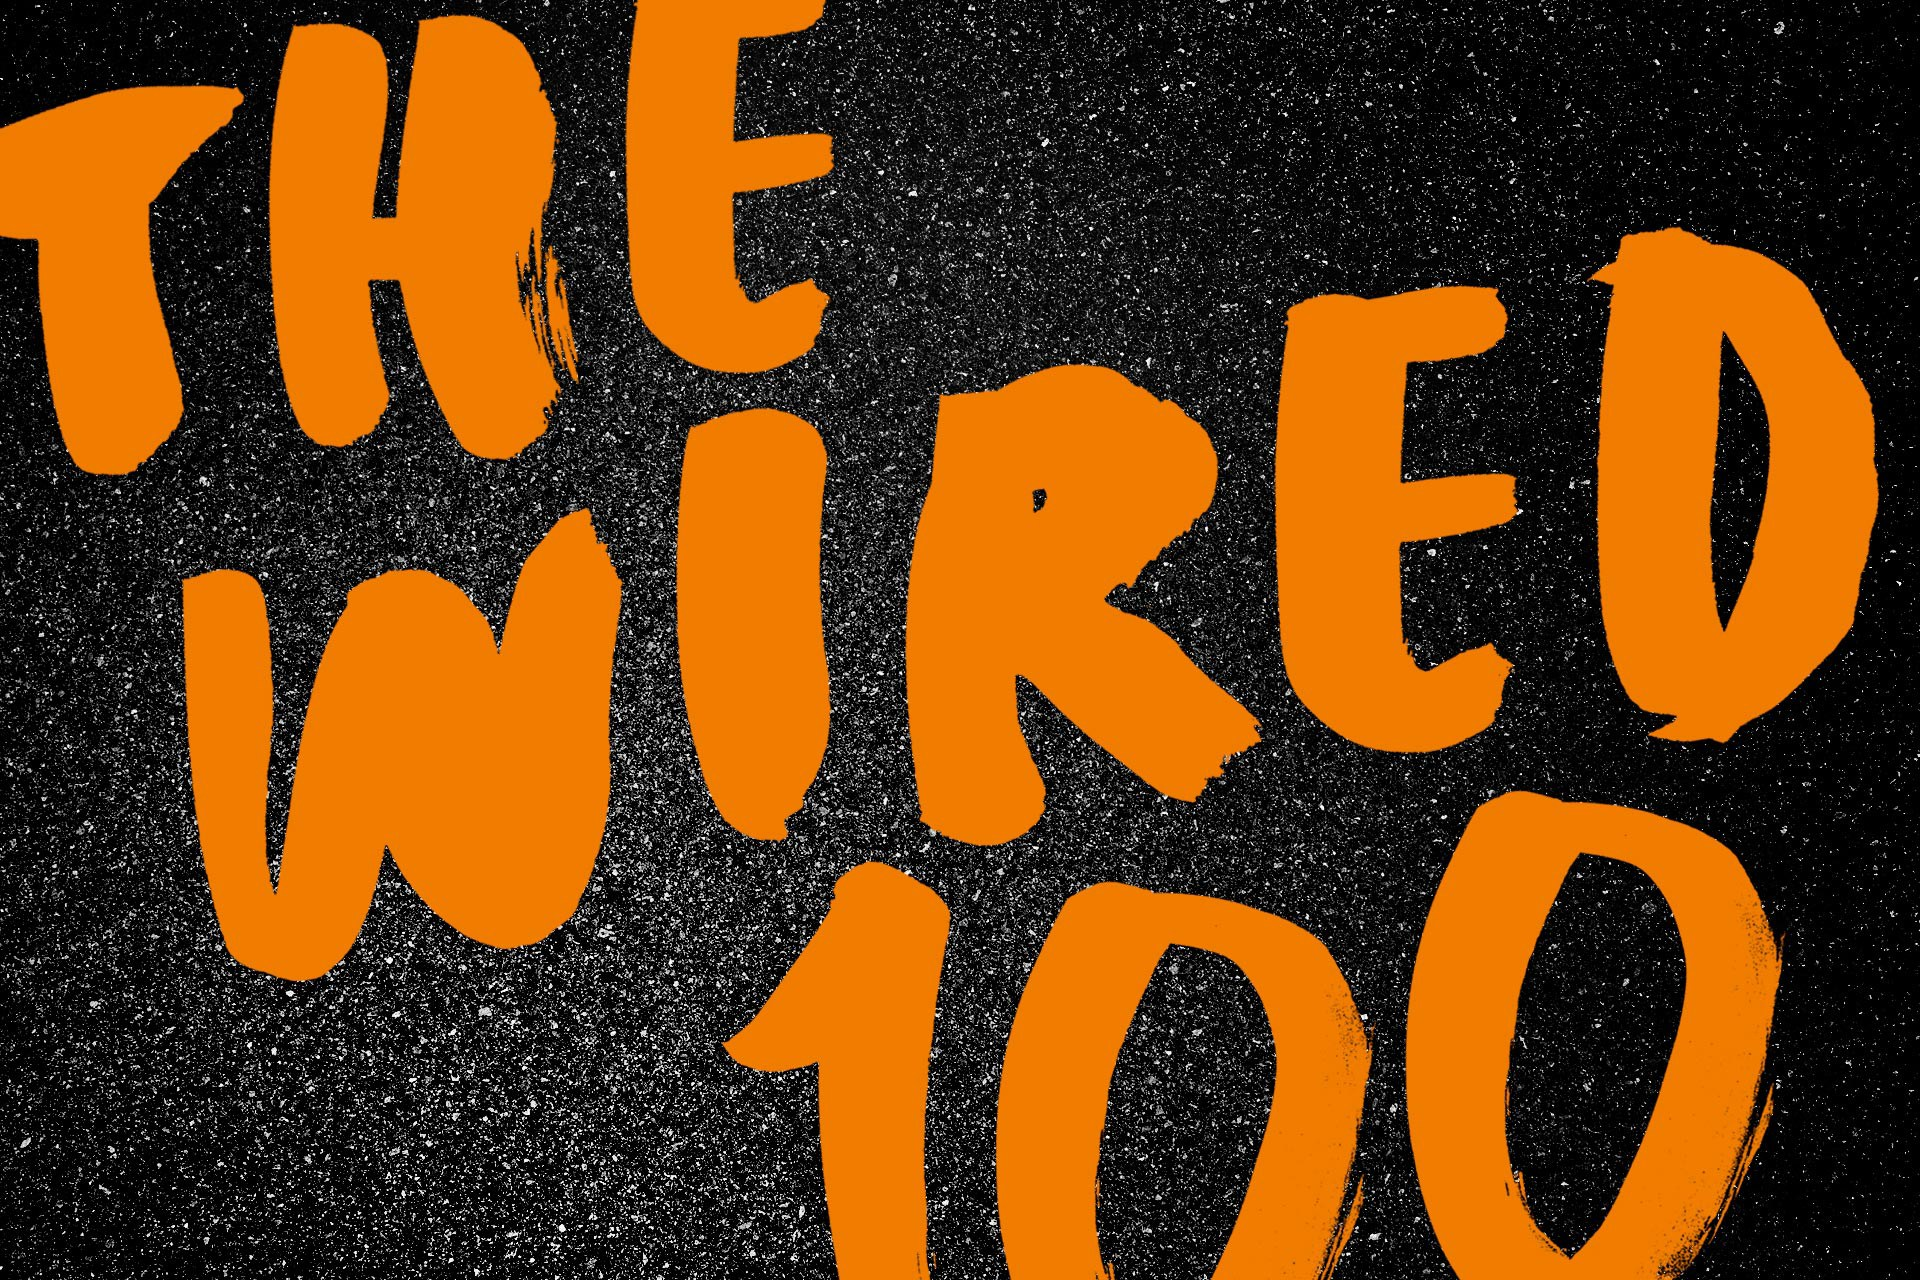 THE 2015 WIRED 100